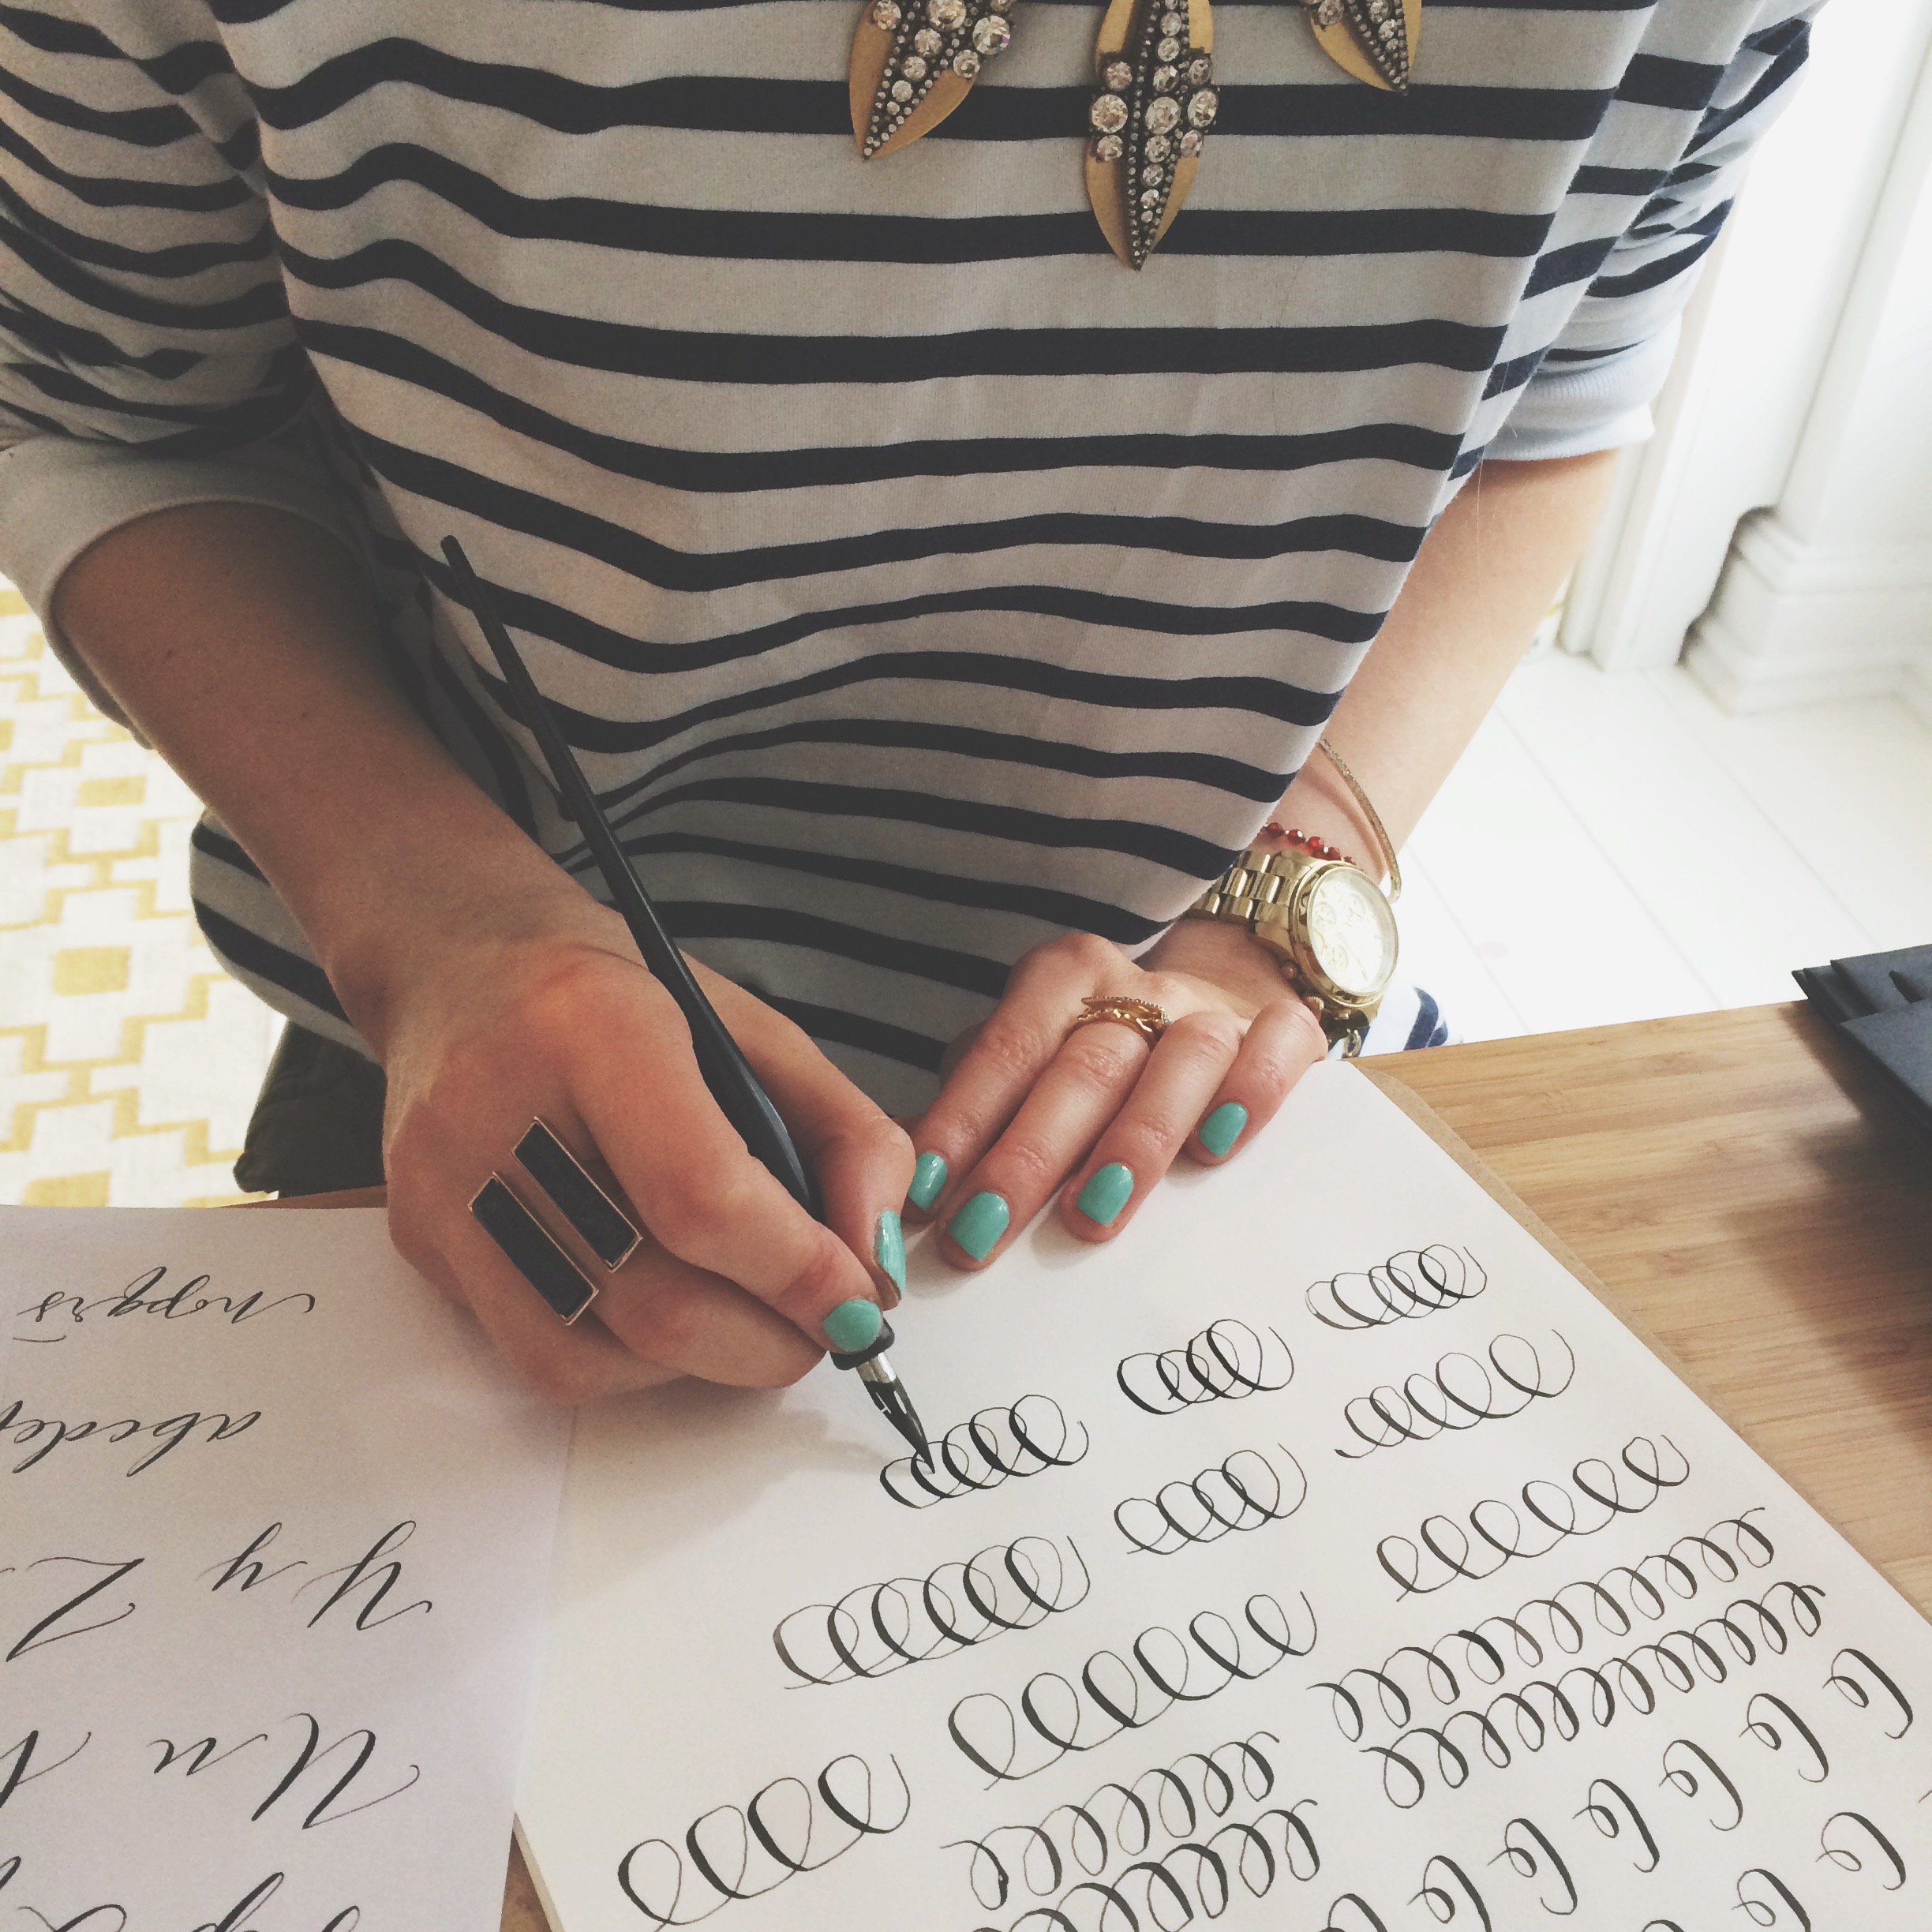 Express calligraphy workshops, for the Winter Boden Press Day. Organised through  Quill London.